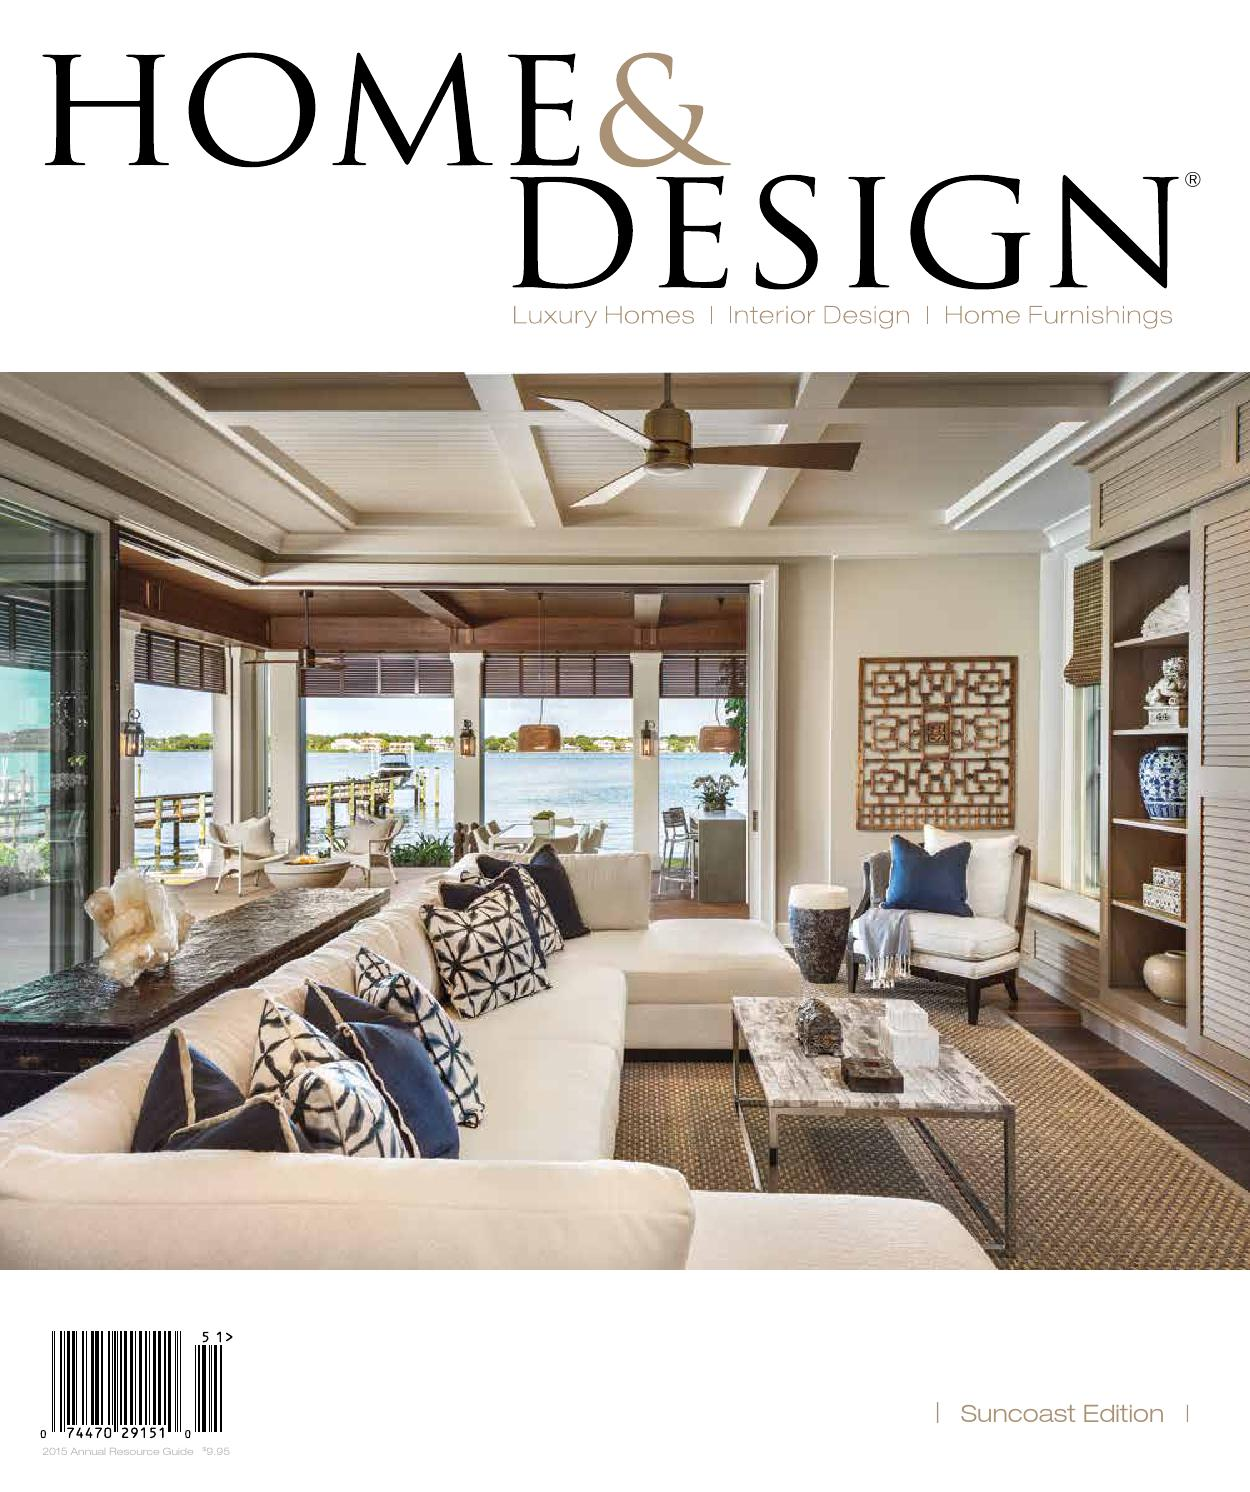 Home Design Magazine florida home design magazine pictures on fancy home interior design and decor ideas about amazing interior Home Design Magazine Annual Resource Guide 2015 Suncoast Florida Edition By Anthony Spano Issuu